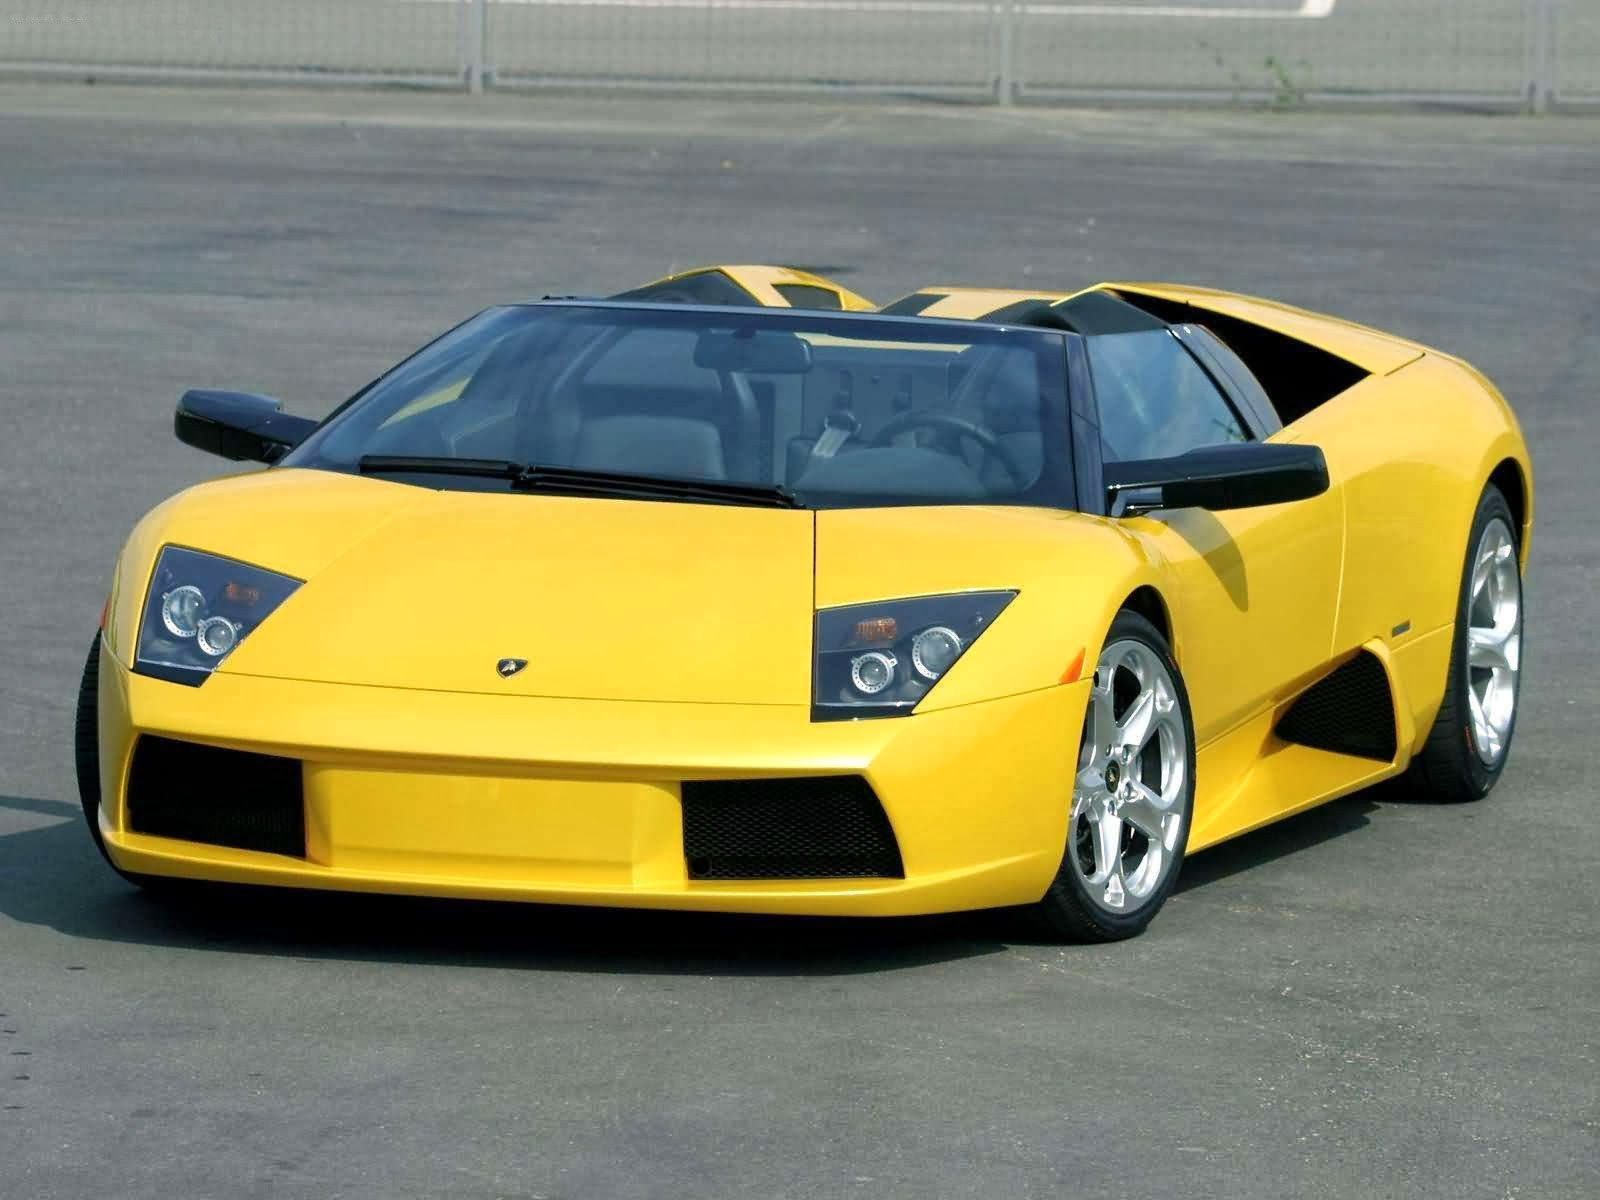 2014 Lamborghini Murcielago Photos Hd